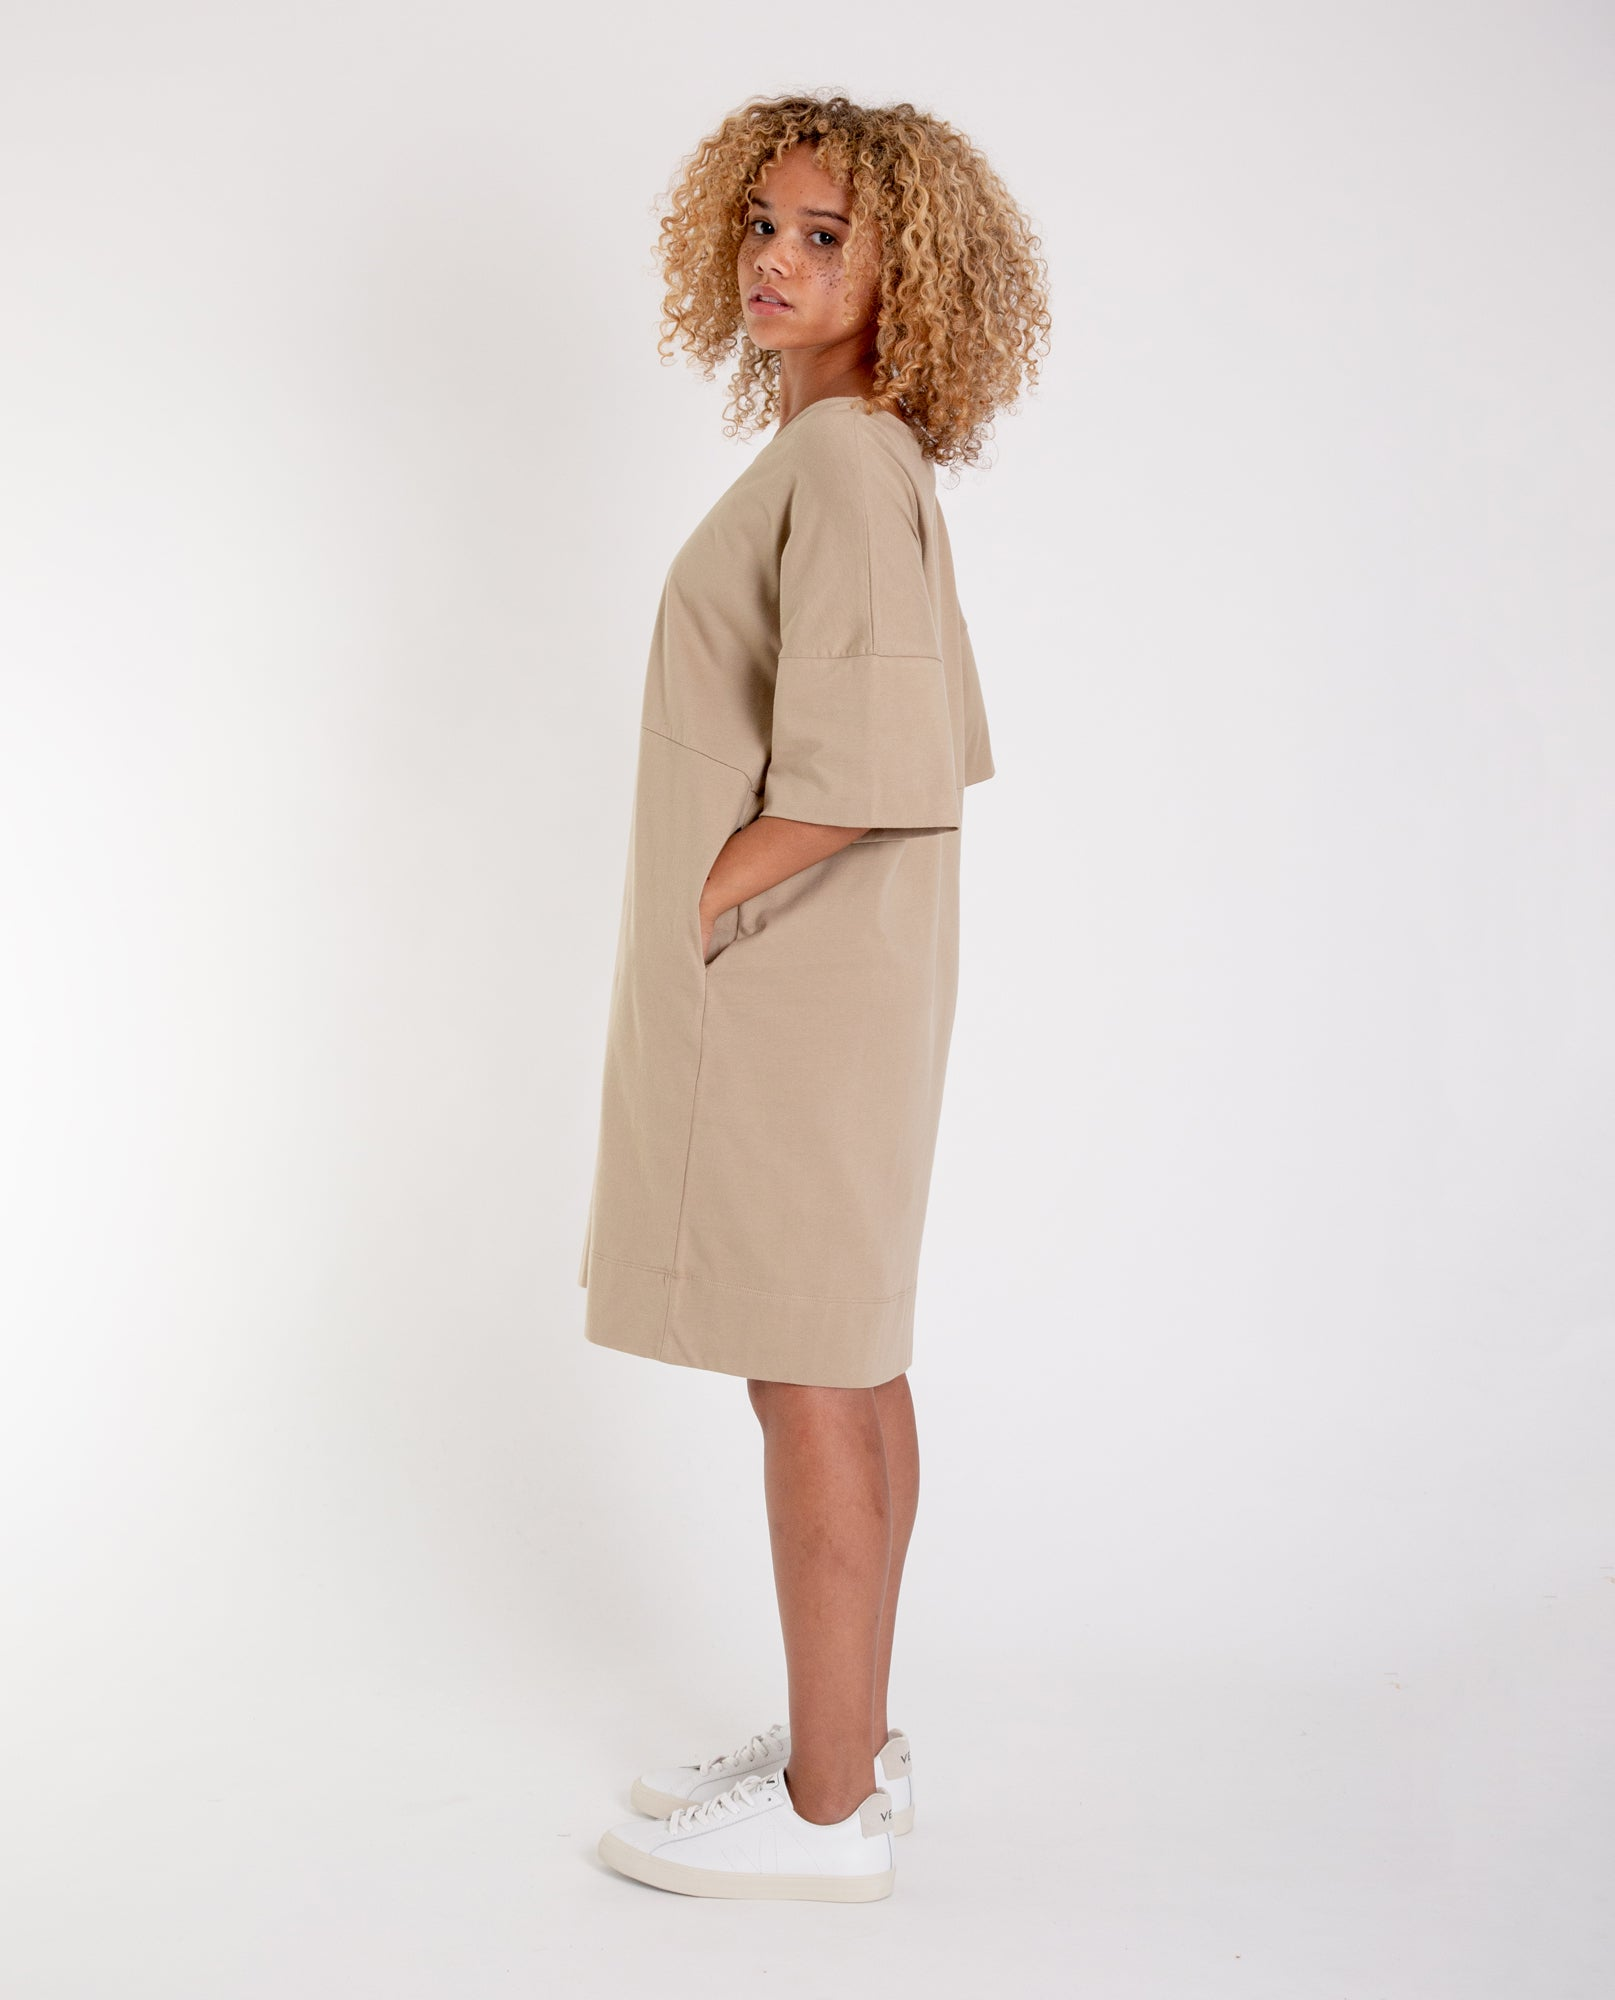 CARLA Organic Cotton Dress in Sand